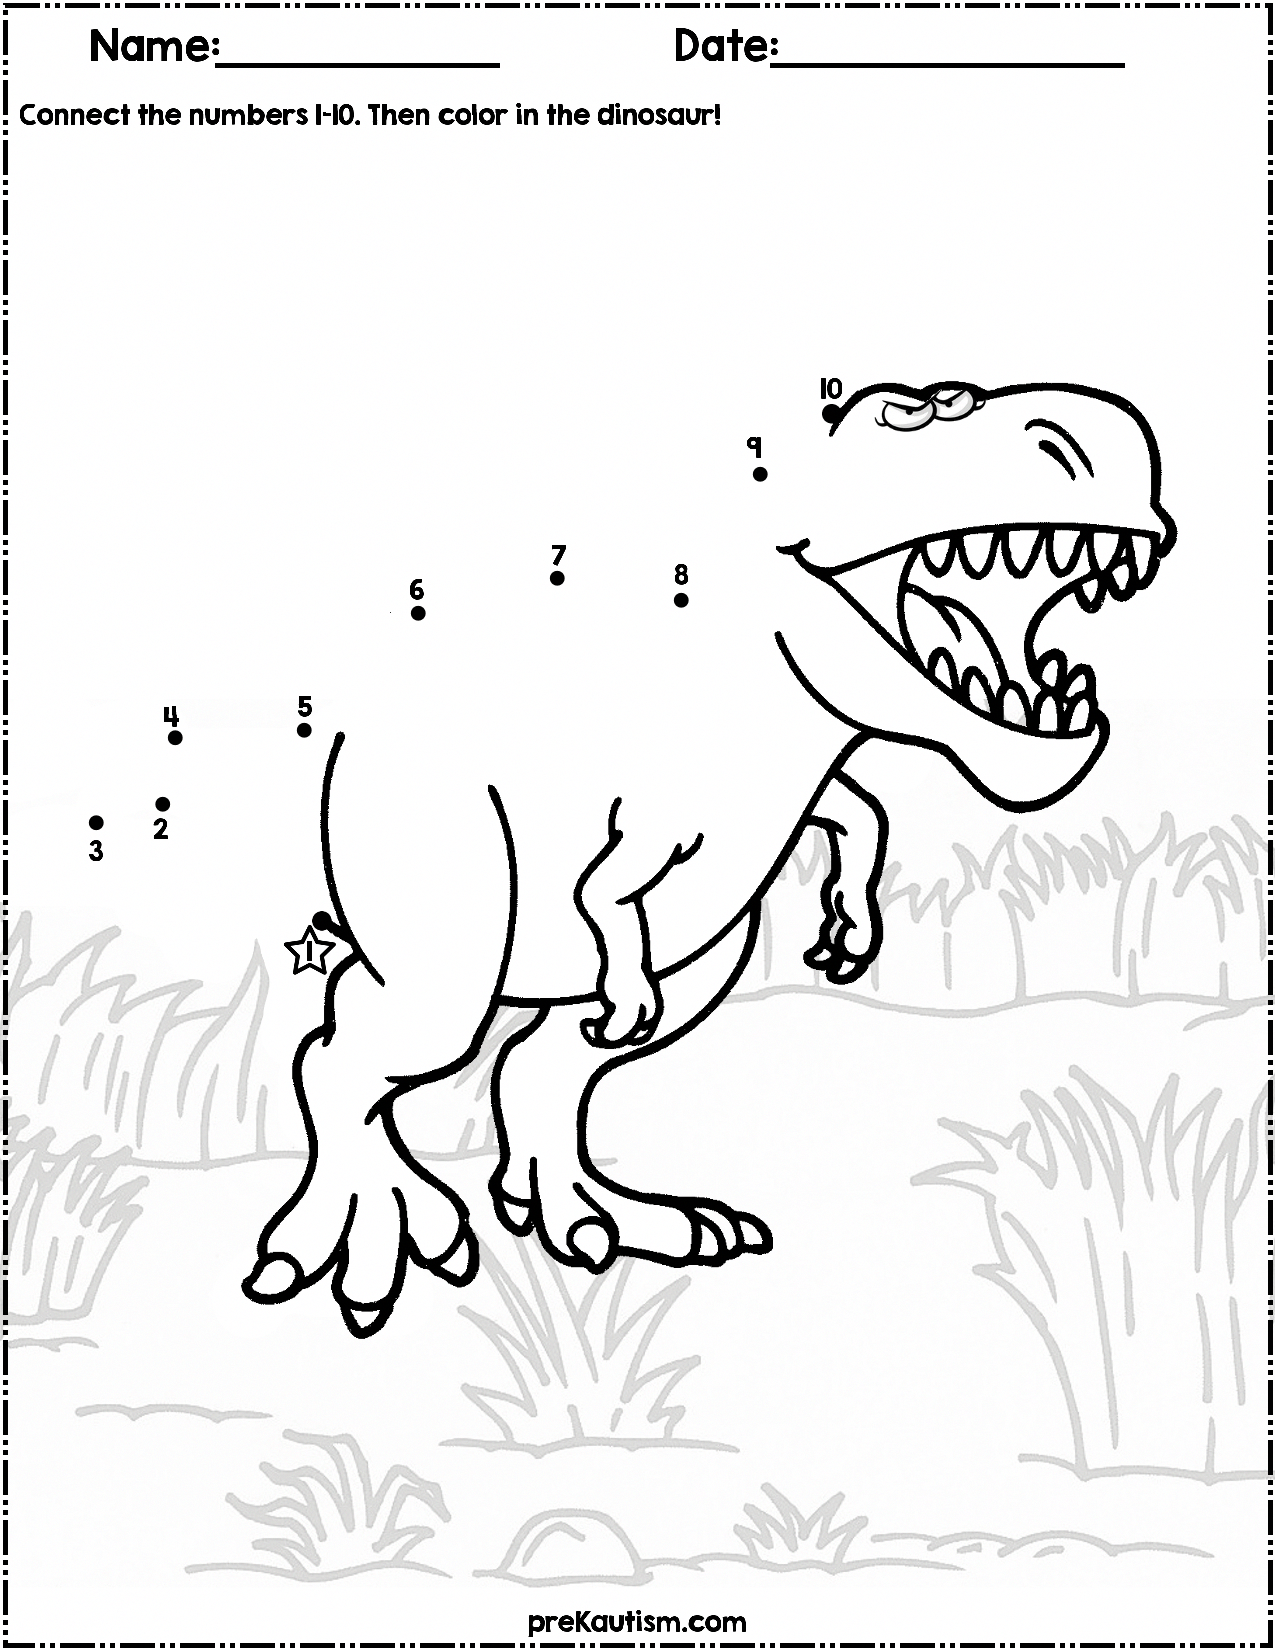 1 50 Learn How To Count 1 10 With These Dinosaur Themed Dot To Dot Activity Worksheets For Preschool Dinosaur Activities Dinosaurs Preschool Dot Worksheets [ 1650 x 1275 Pixel ]